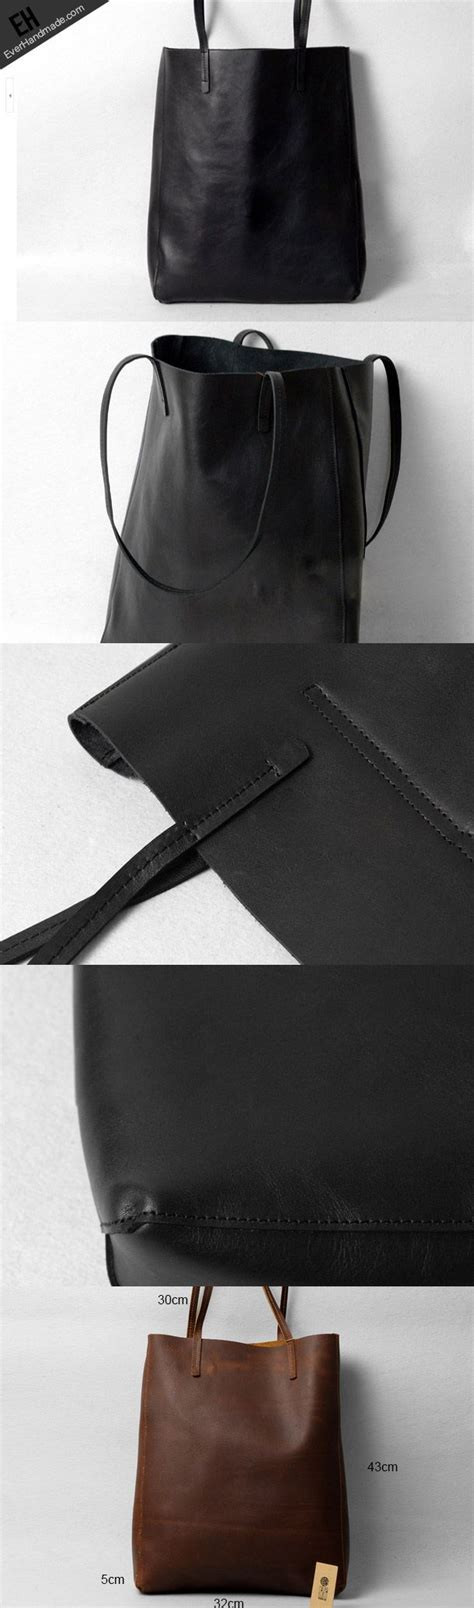 Clutch Sling Bag By Big Hug 1000 images about leather bags and purses on